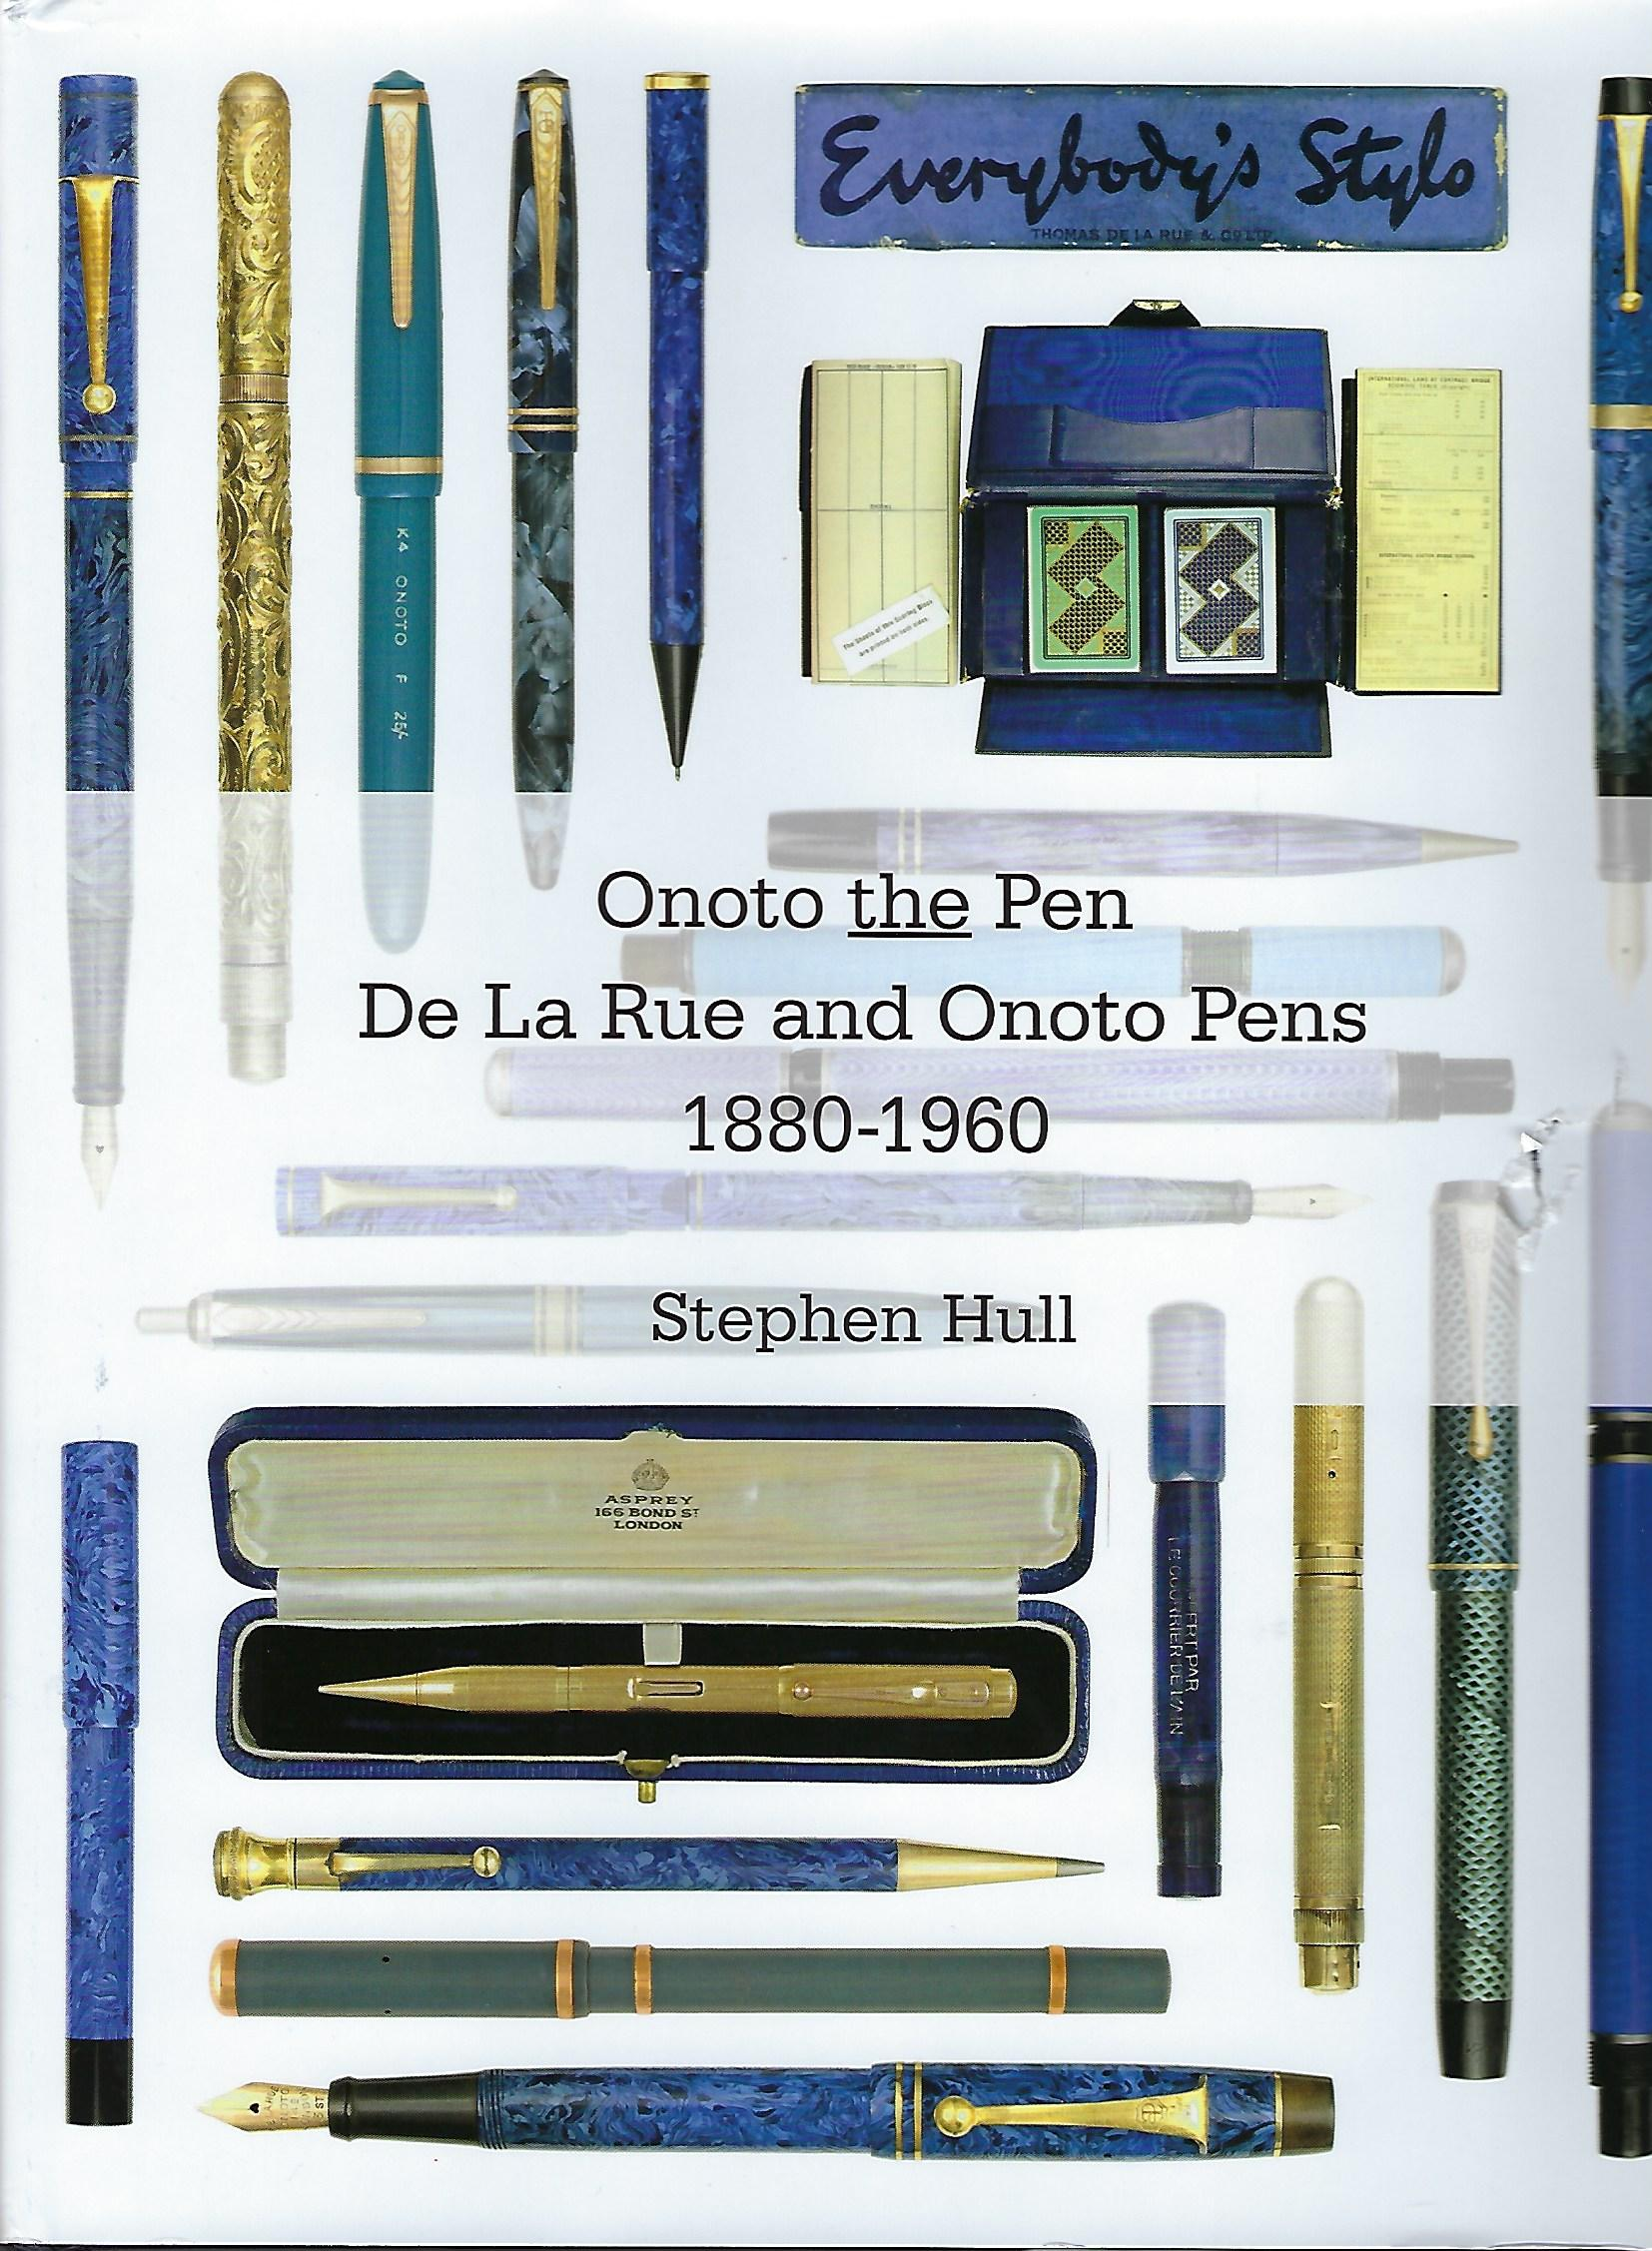 Onoto the Pen